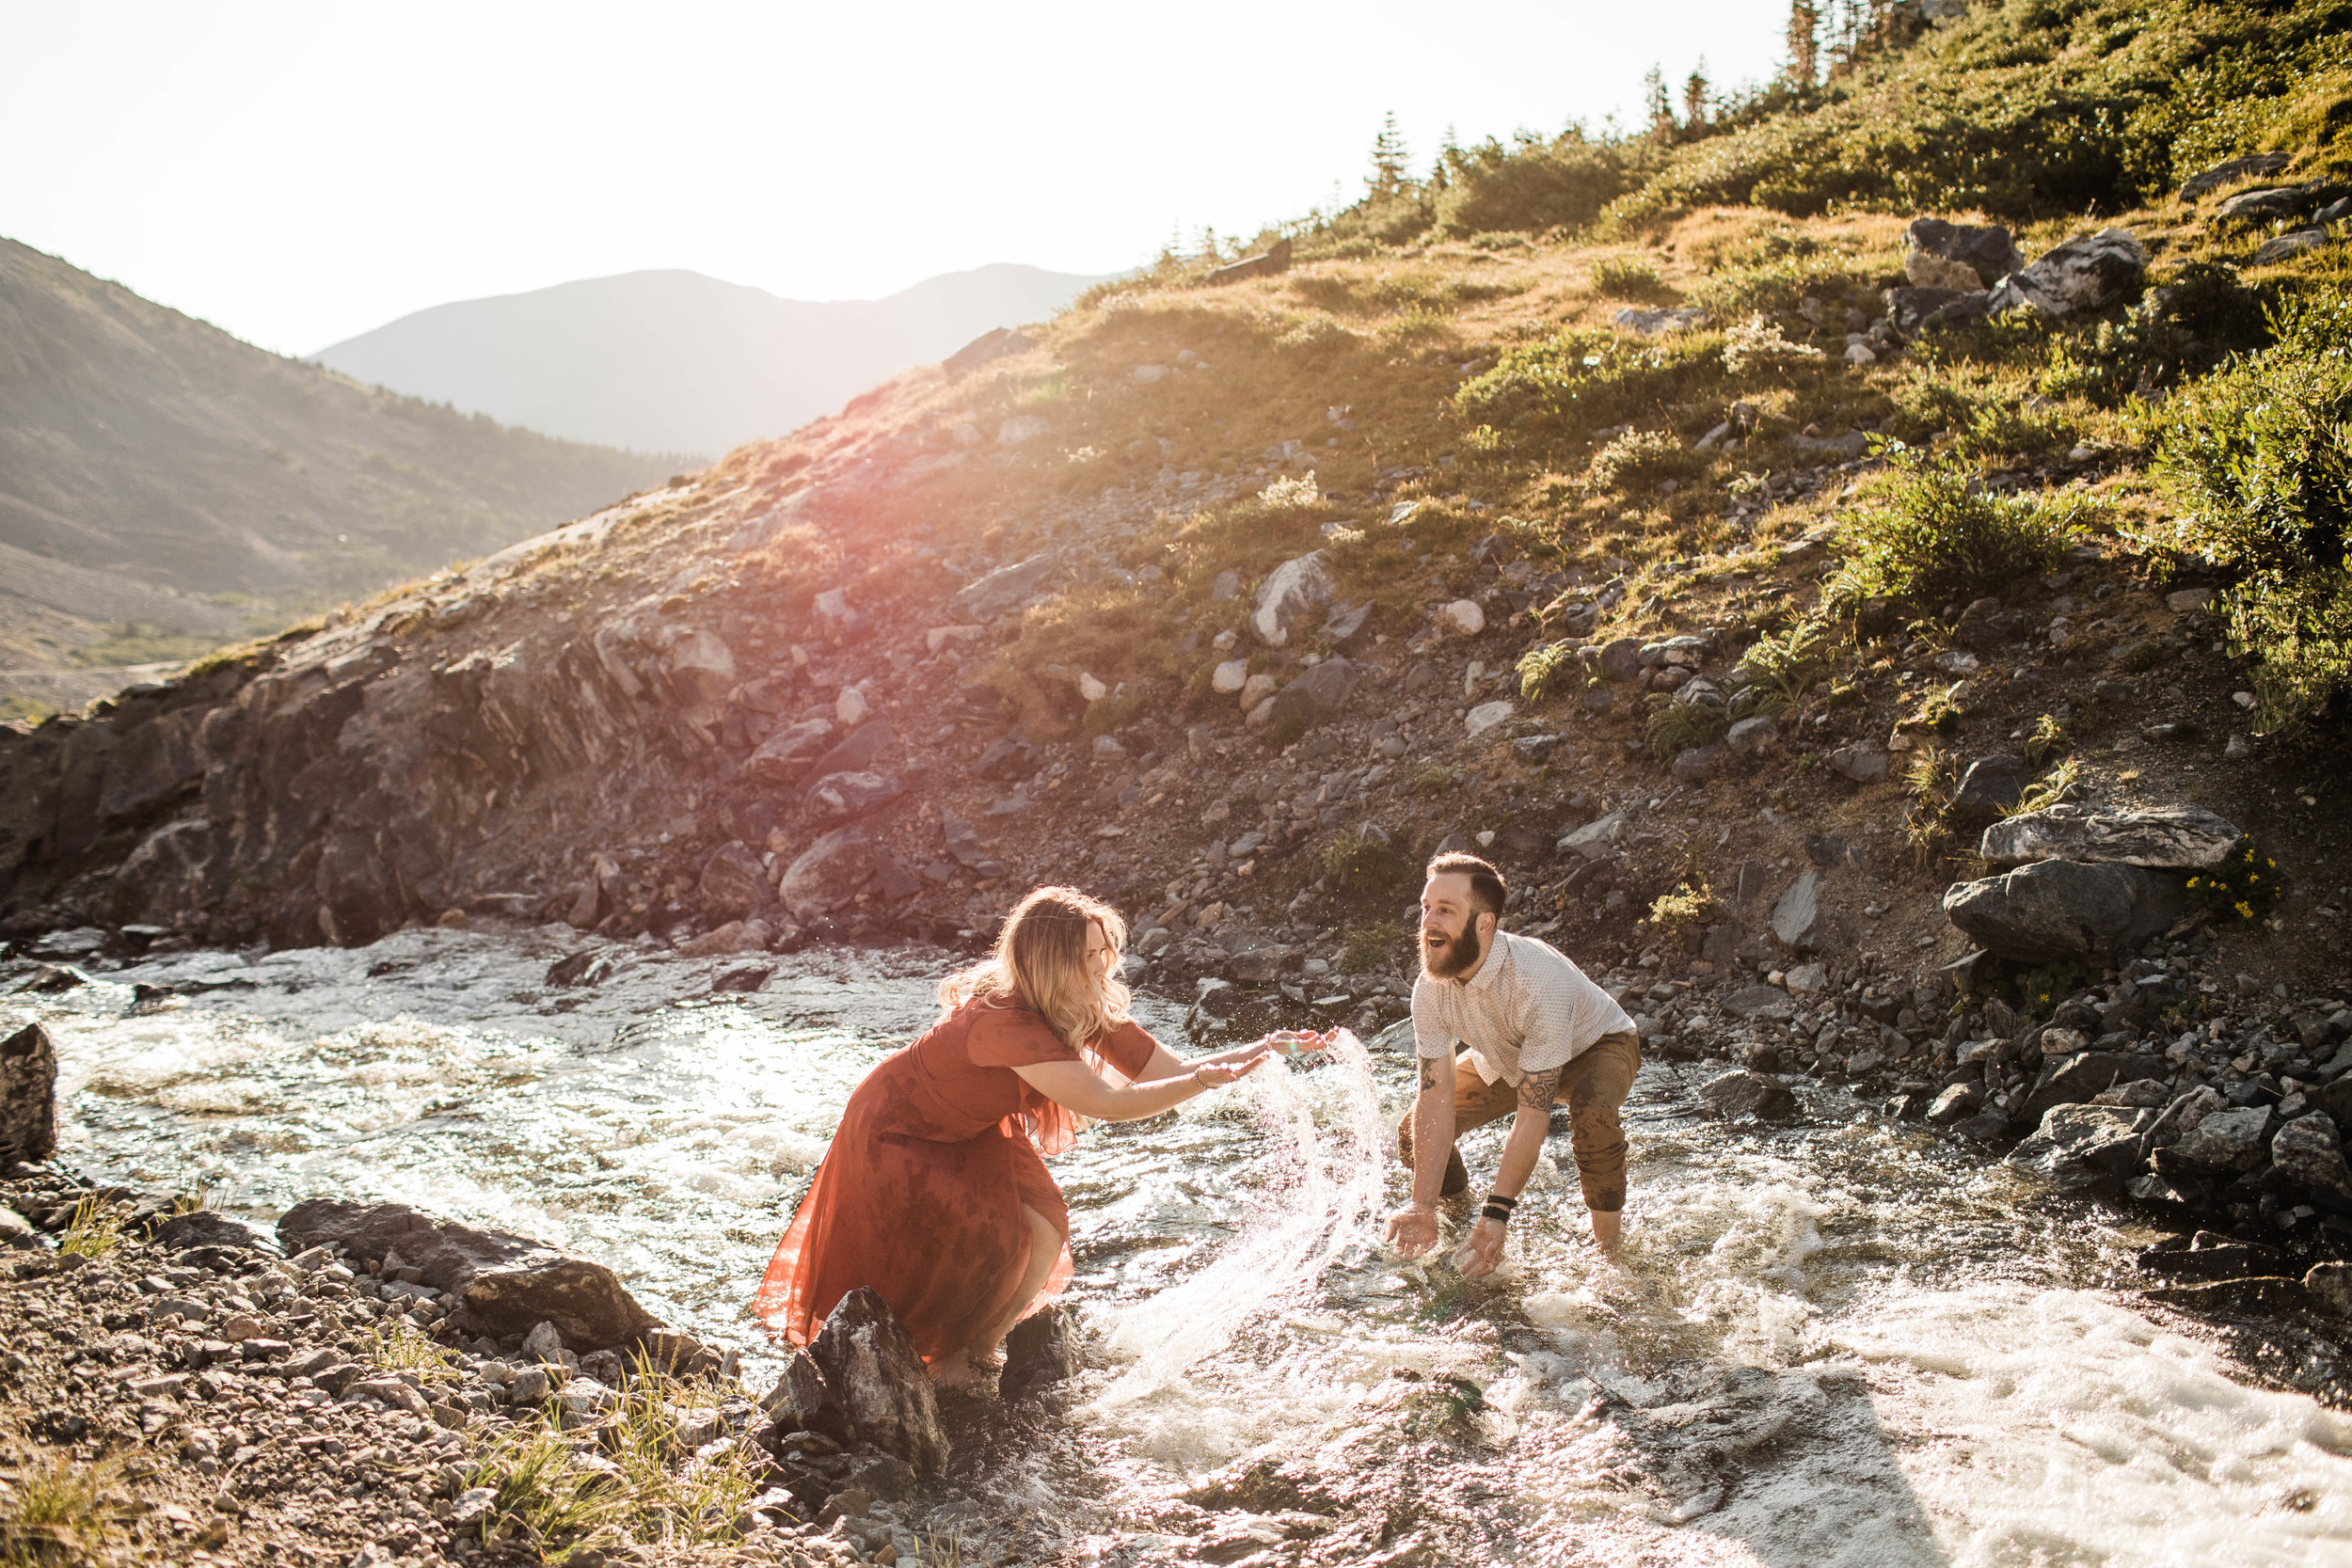 eloping couple splashing around in a creek during their adventurous engagement photos in the mountains of Colorado | Breckenridge adventure elopement photographers